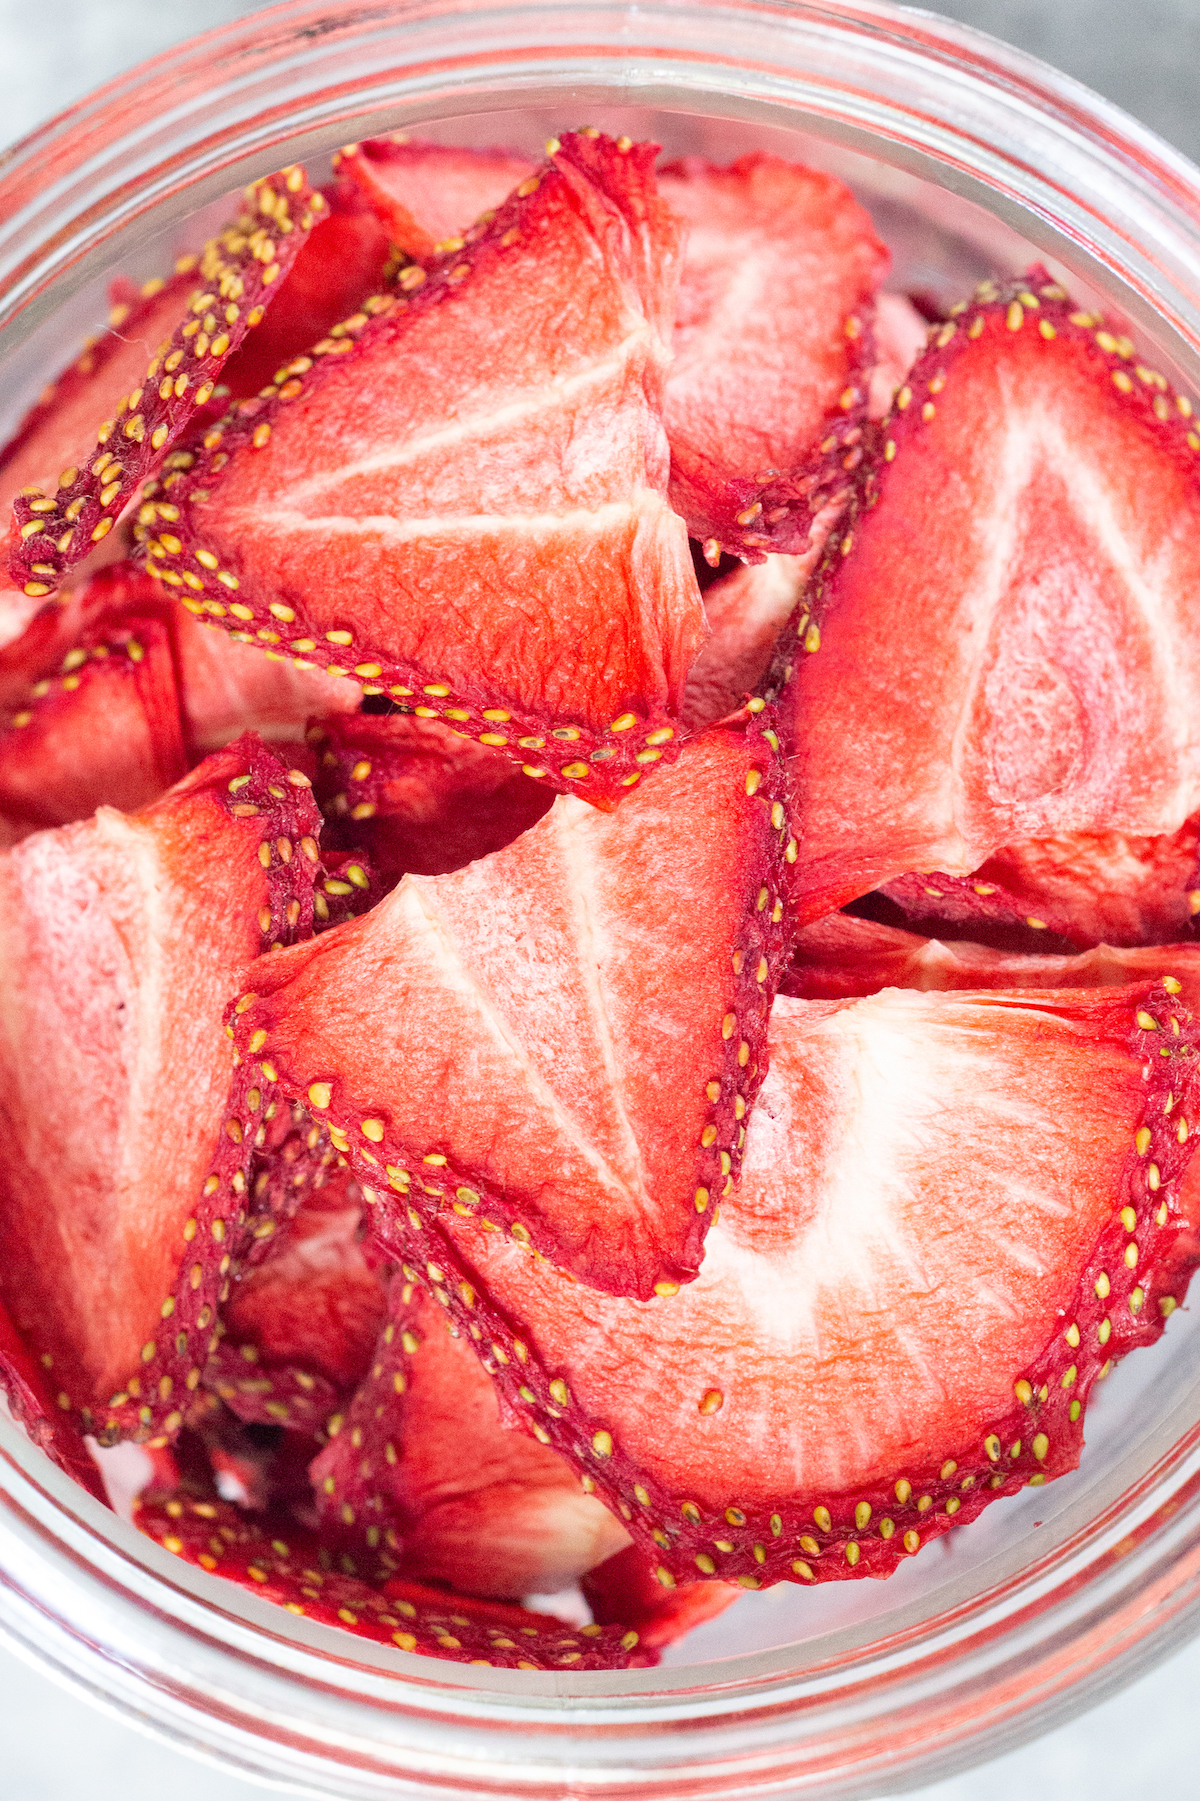 Overhead view of a glass jar that's filled to the top with sliced dehydrated strawberries